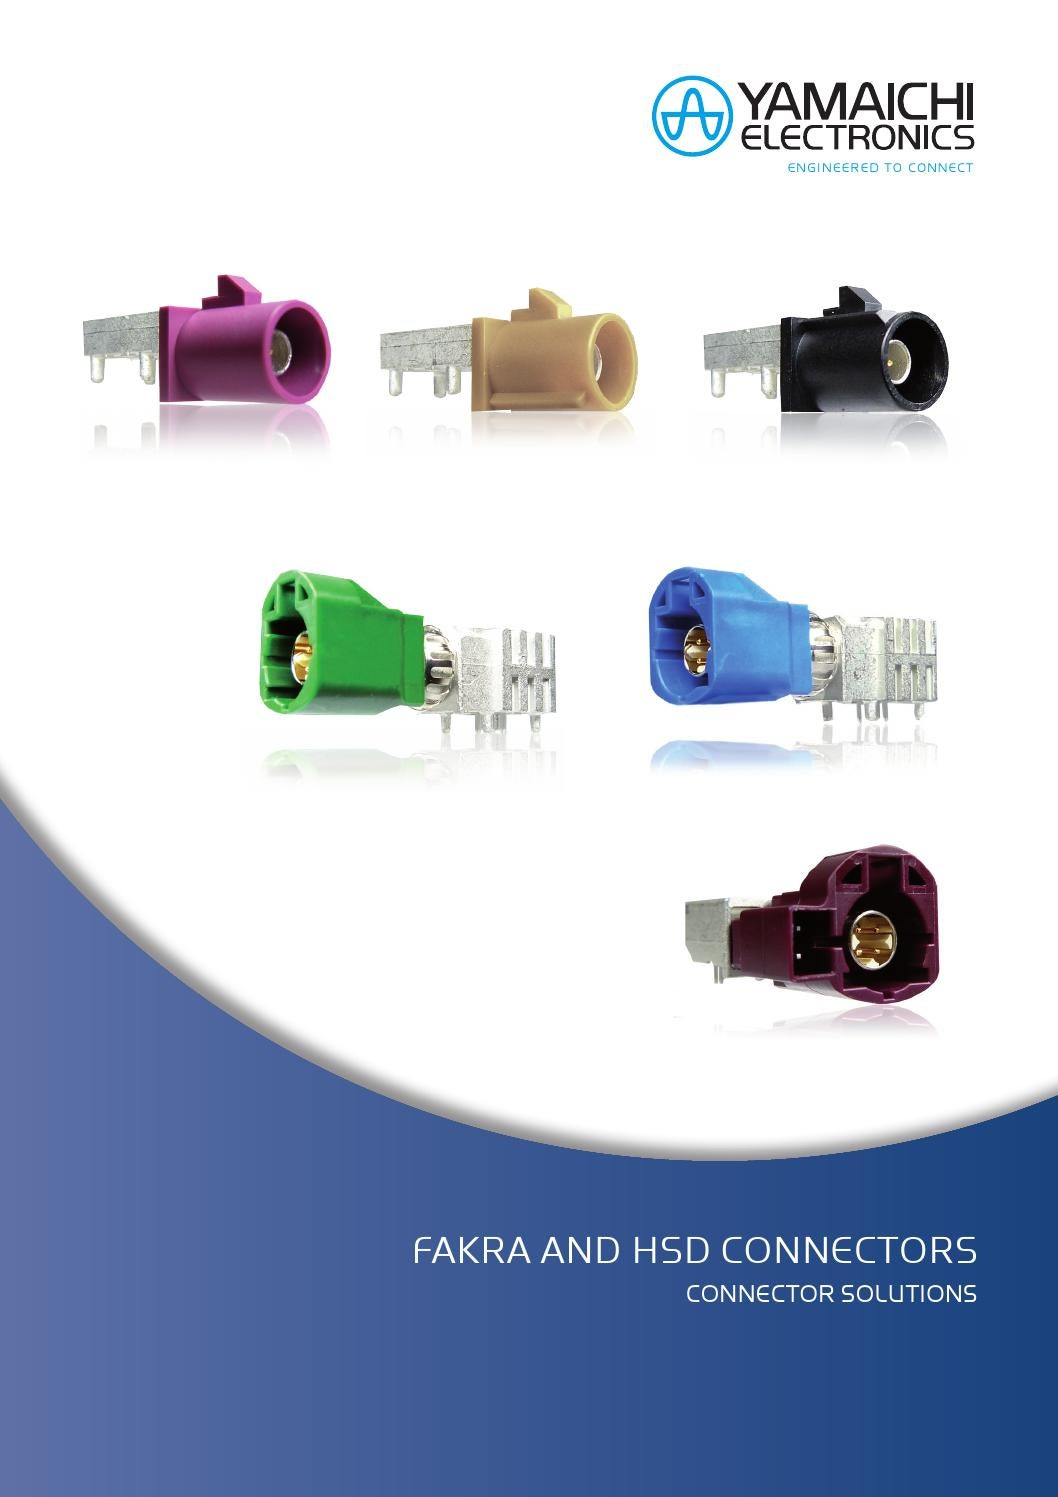 FAKRA and HSD CONNECTORS by Ivan Minin - issuu